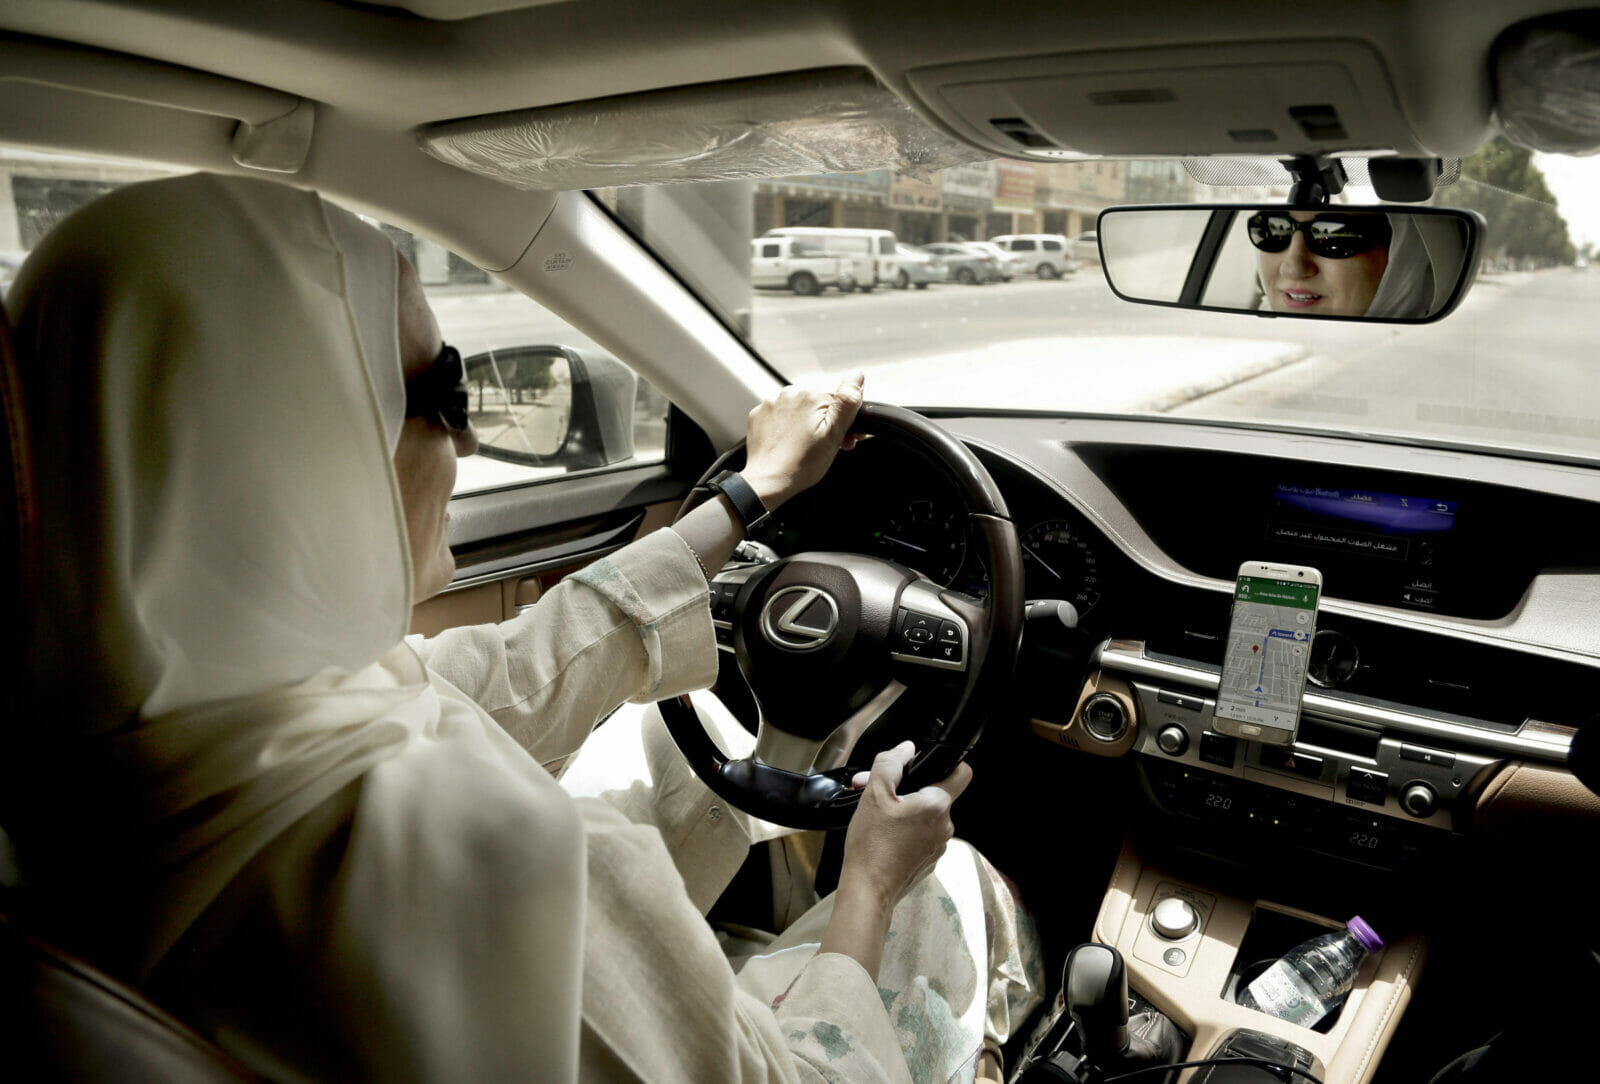 In this Sunday, June 24, 2018 photo, Ammal Farahat, who has signed up to be a driver for Careem, a regional ride-hailing service that is a competitor to Uber, drives her car in Riyadh, Saudi Arabia. After lifting a longstanding ban on women driving, it's the latest job opening for Saudi women, that had been reserved for men only, and one that sharply challenges traditional norms. (AP Photo/Nariman El-Mofty)